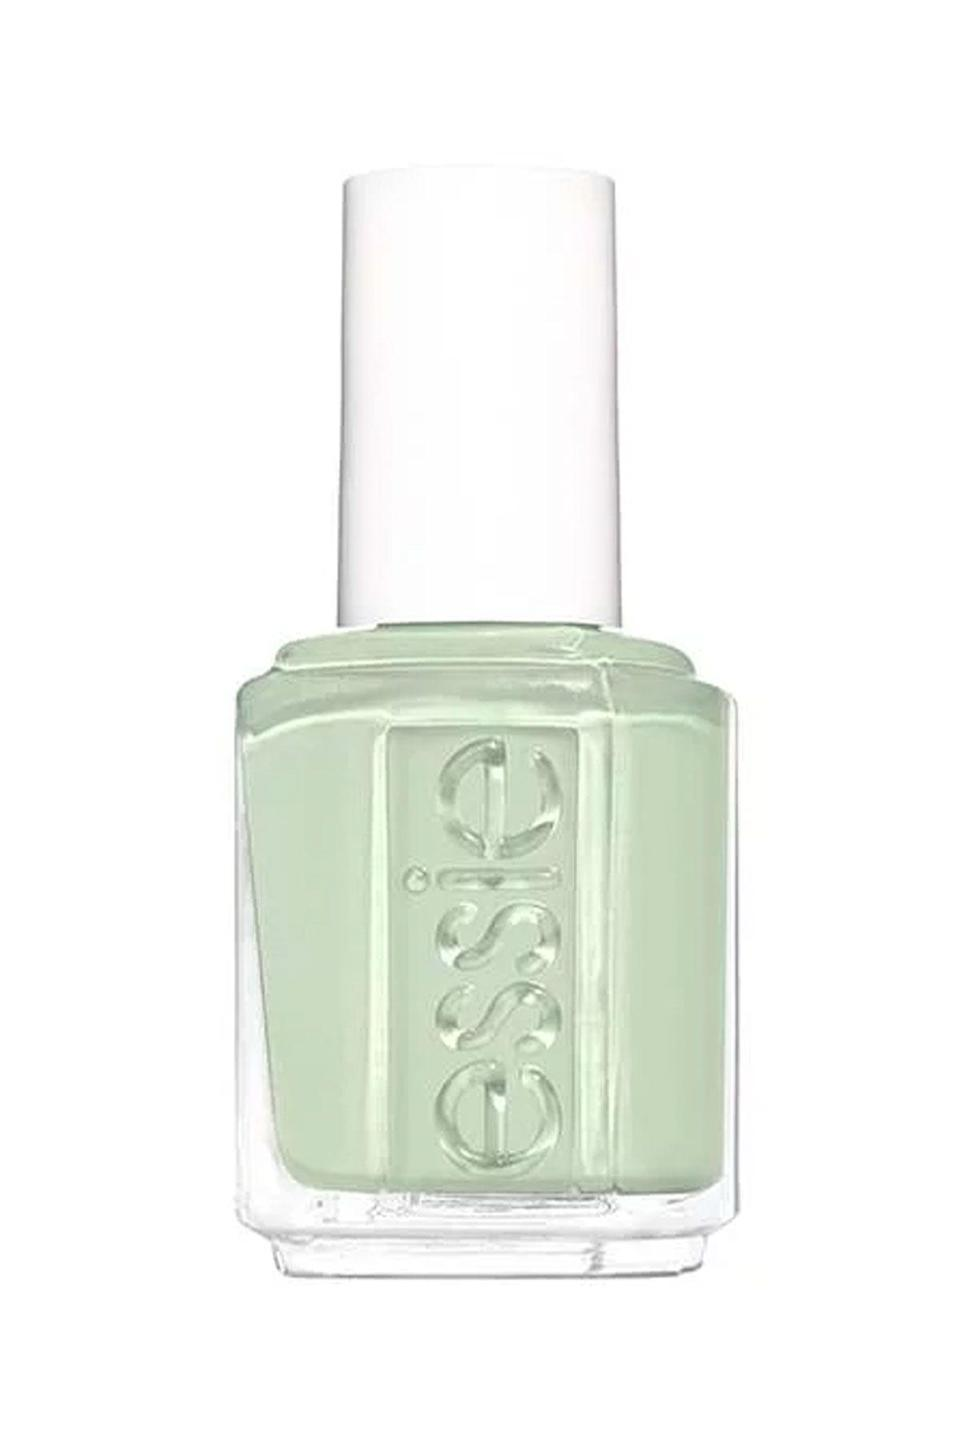 """<p><strong>Essie</strong></p><p>essie.com</p><p><strong>$9.00</strong></p><p><a href=""""https://www.essie.com/nail-polish/enamel/greens/can-dew-attitude"""" rel=""""nofollow noopener"""" target=""""_blank"""" data-ylk=""""slk:SHOP NOW"""" class=""""link rapid-noclick-resp"""">SHOP NOW</a></p><p>Spring is all about the pastels, and this jade green is lively yet chic. Whether you wear it to brunch with friends or study hall, your nails will look crisp af in this shade.</p>"""